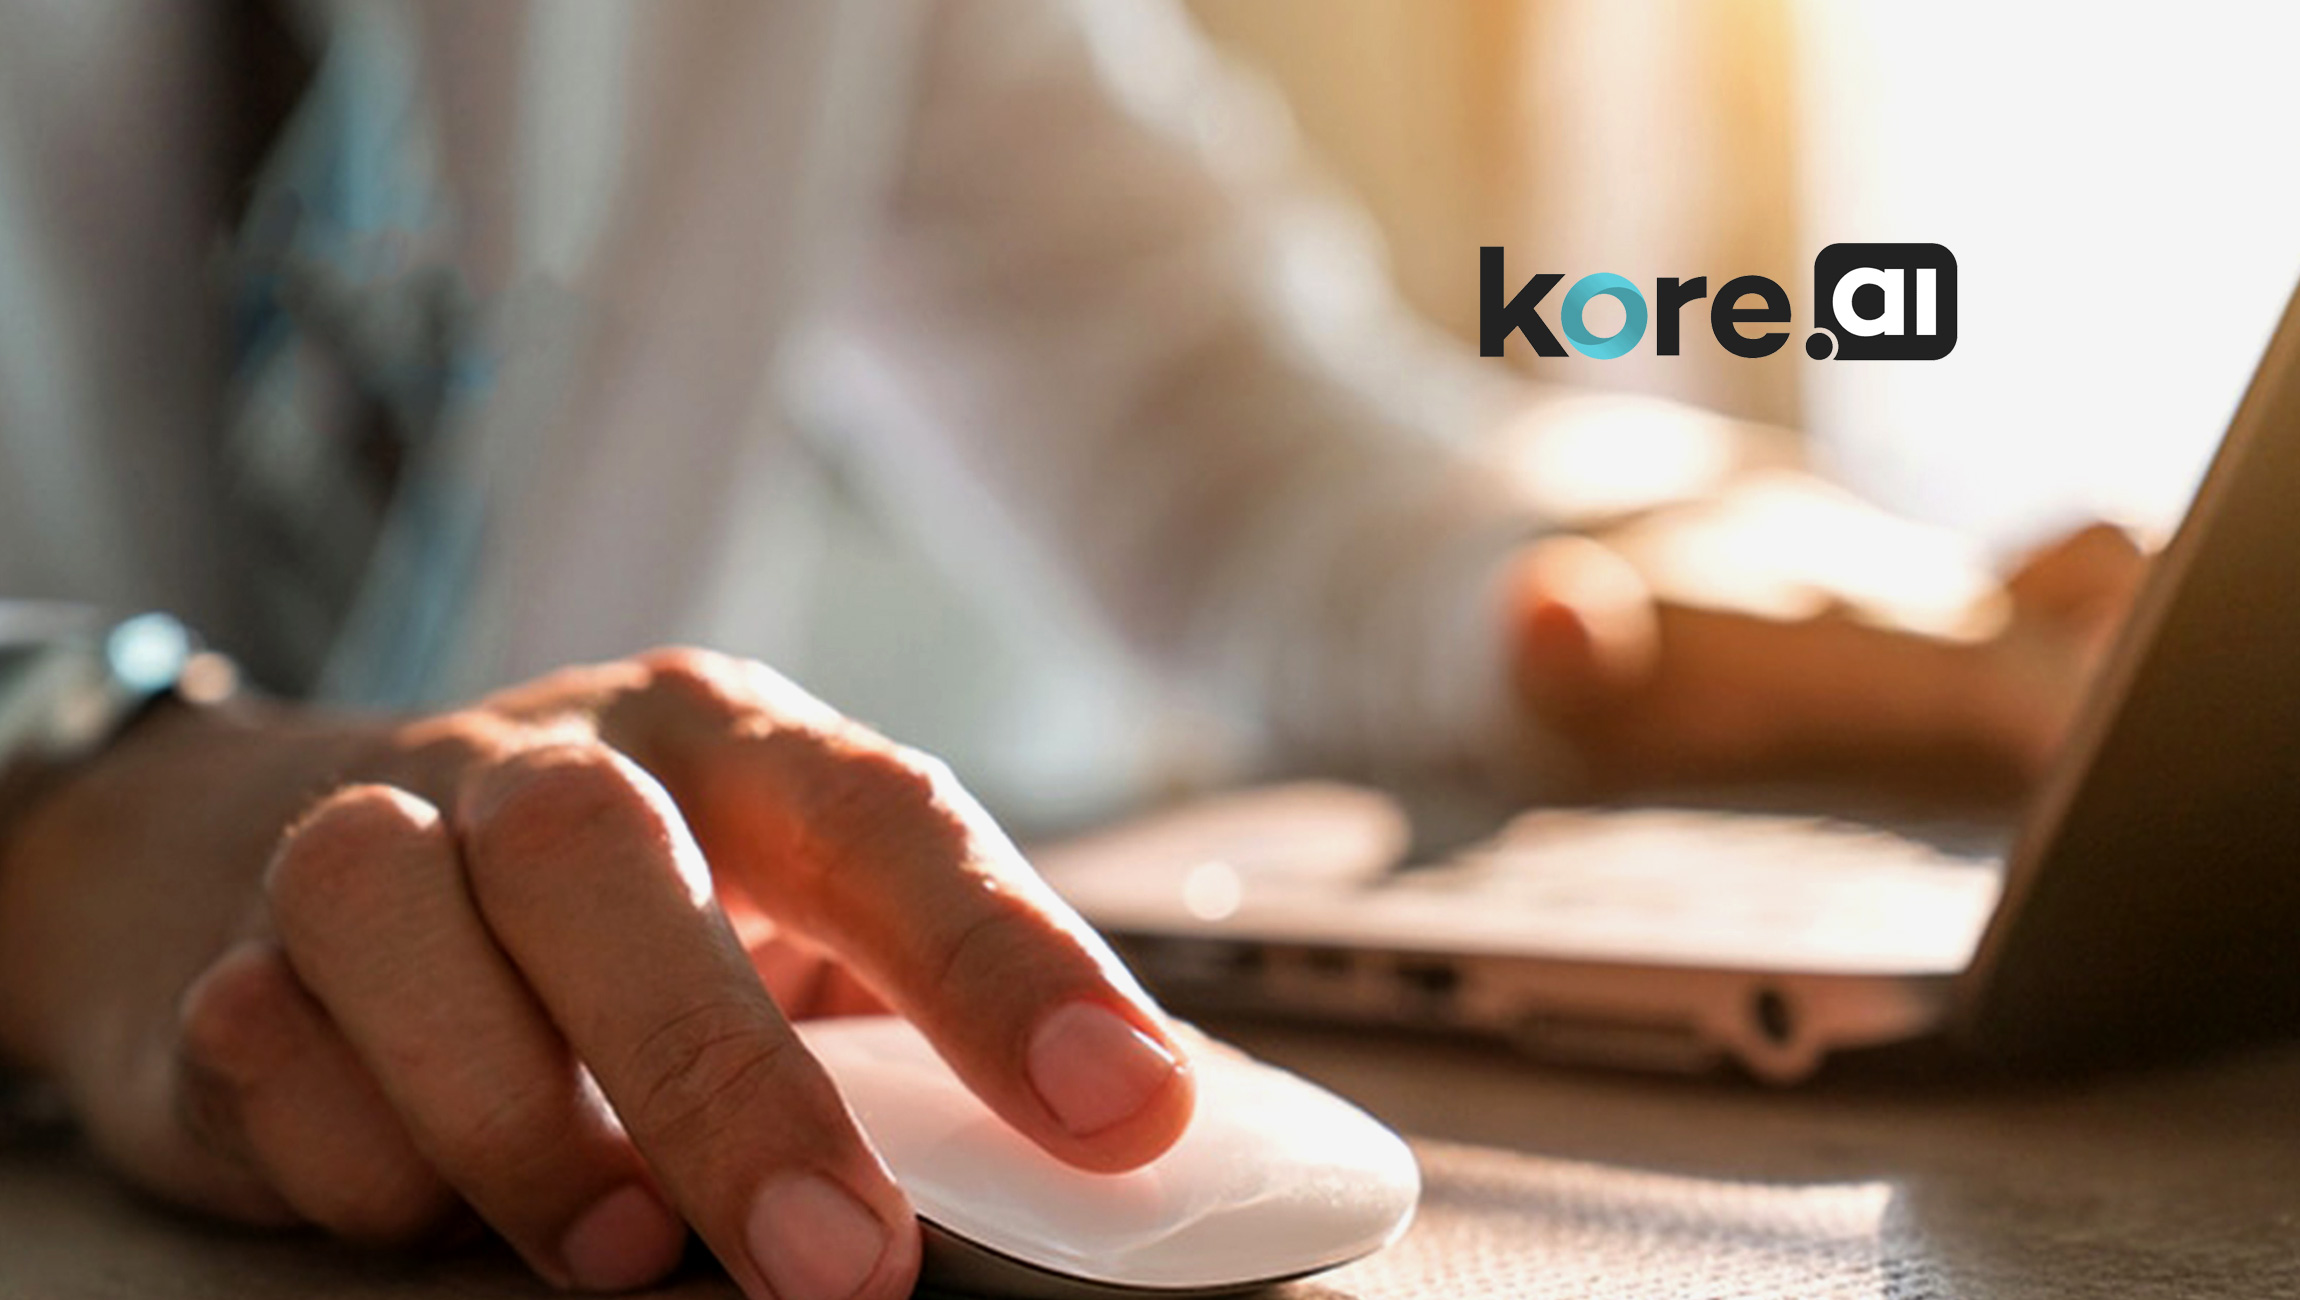 Kore.ai Raises Funding from Vistara Capital to Drive Innovation and Accelerate Growth